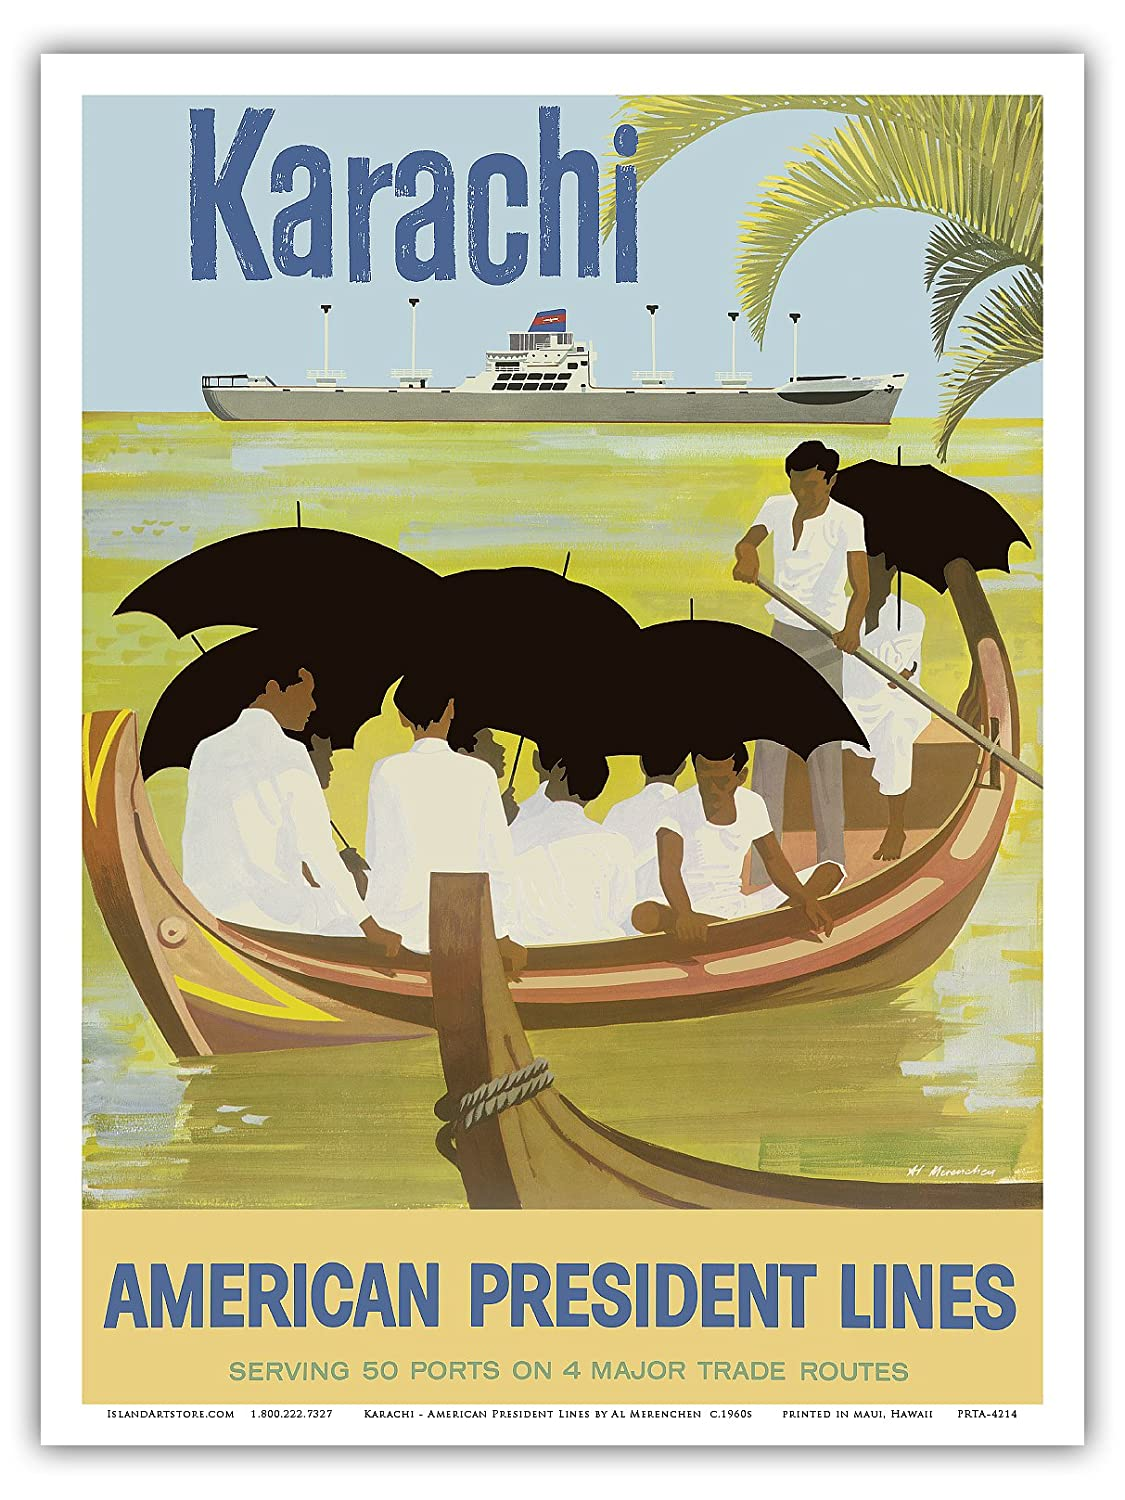 Vintage World Travel Poster by Al Merenchen c.1959 Boat Pakistan 9in x 12in American President Lines Master Art Print Karachi